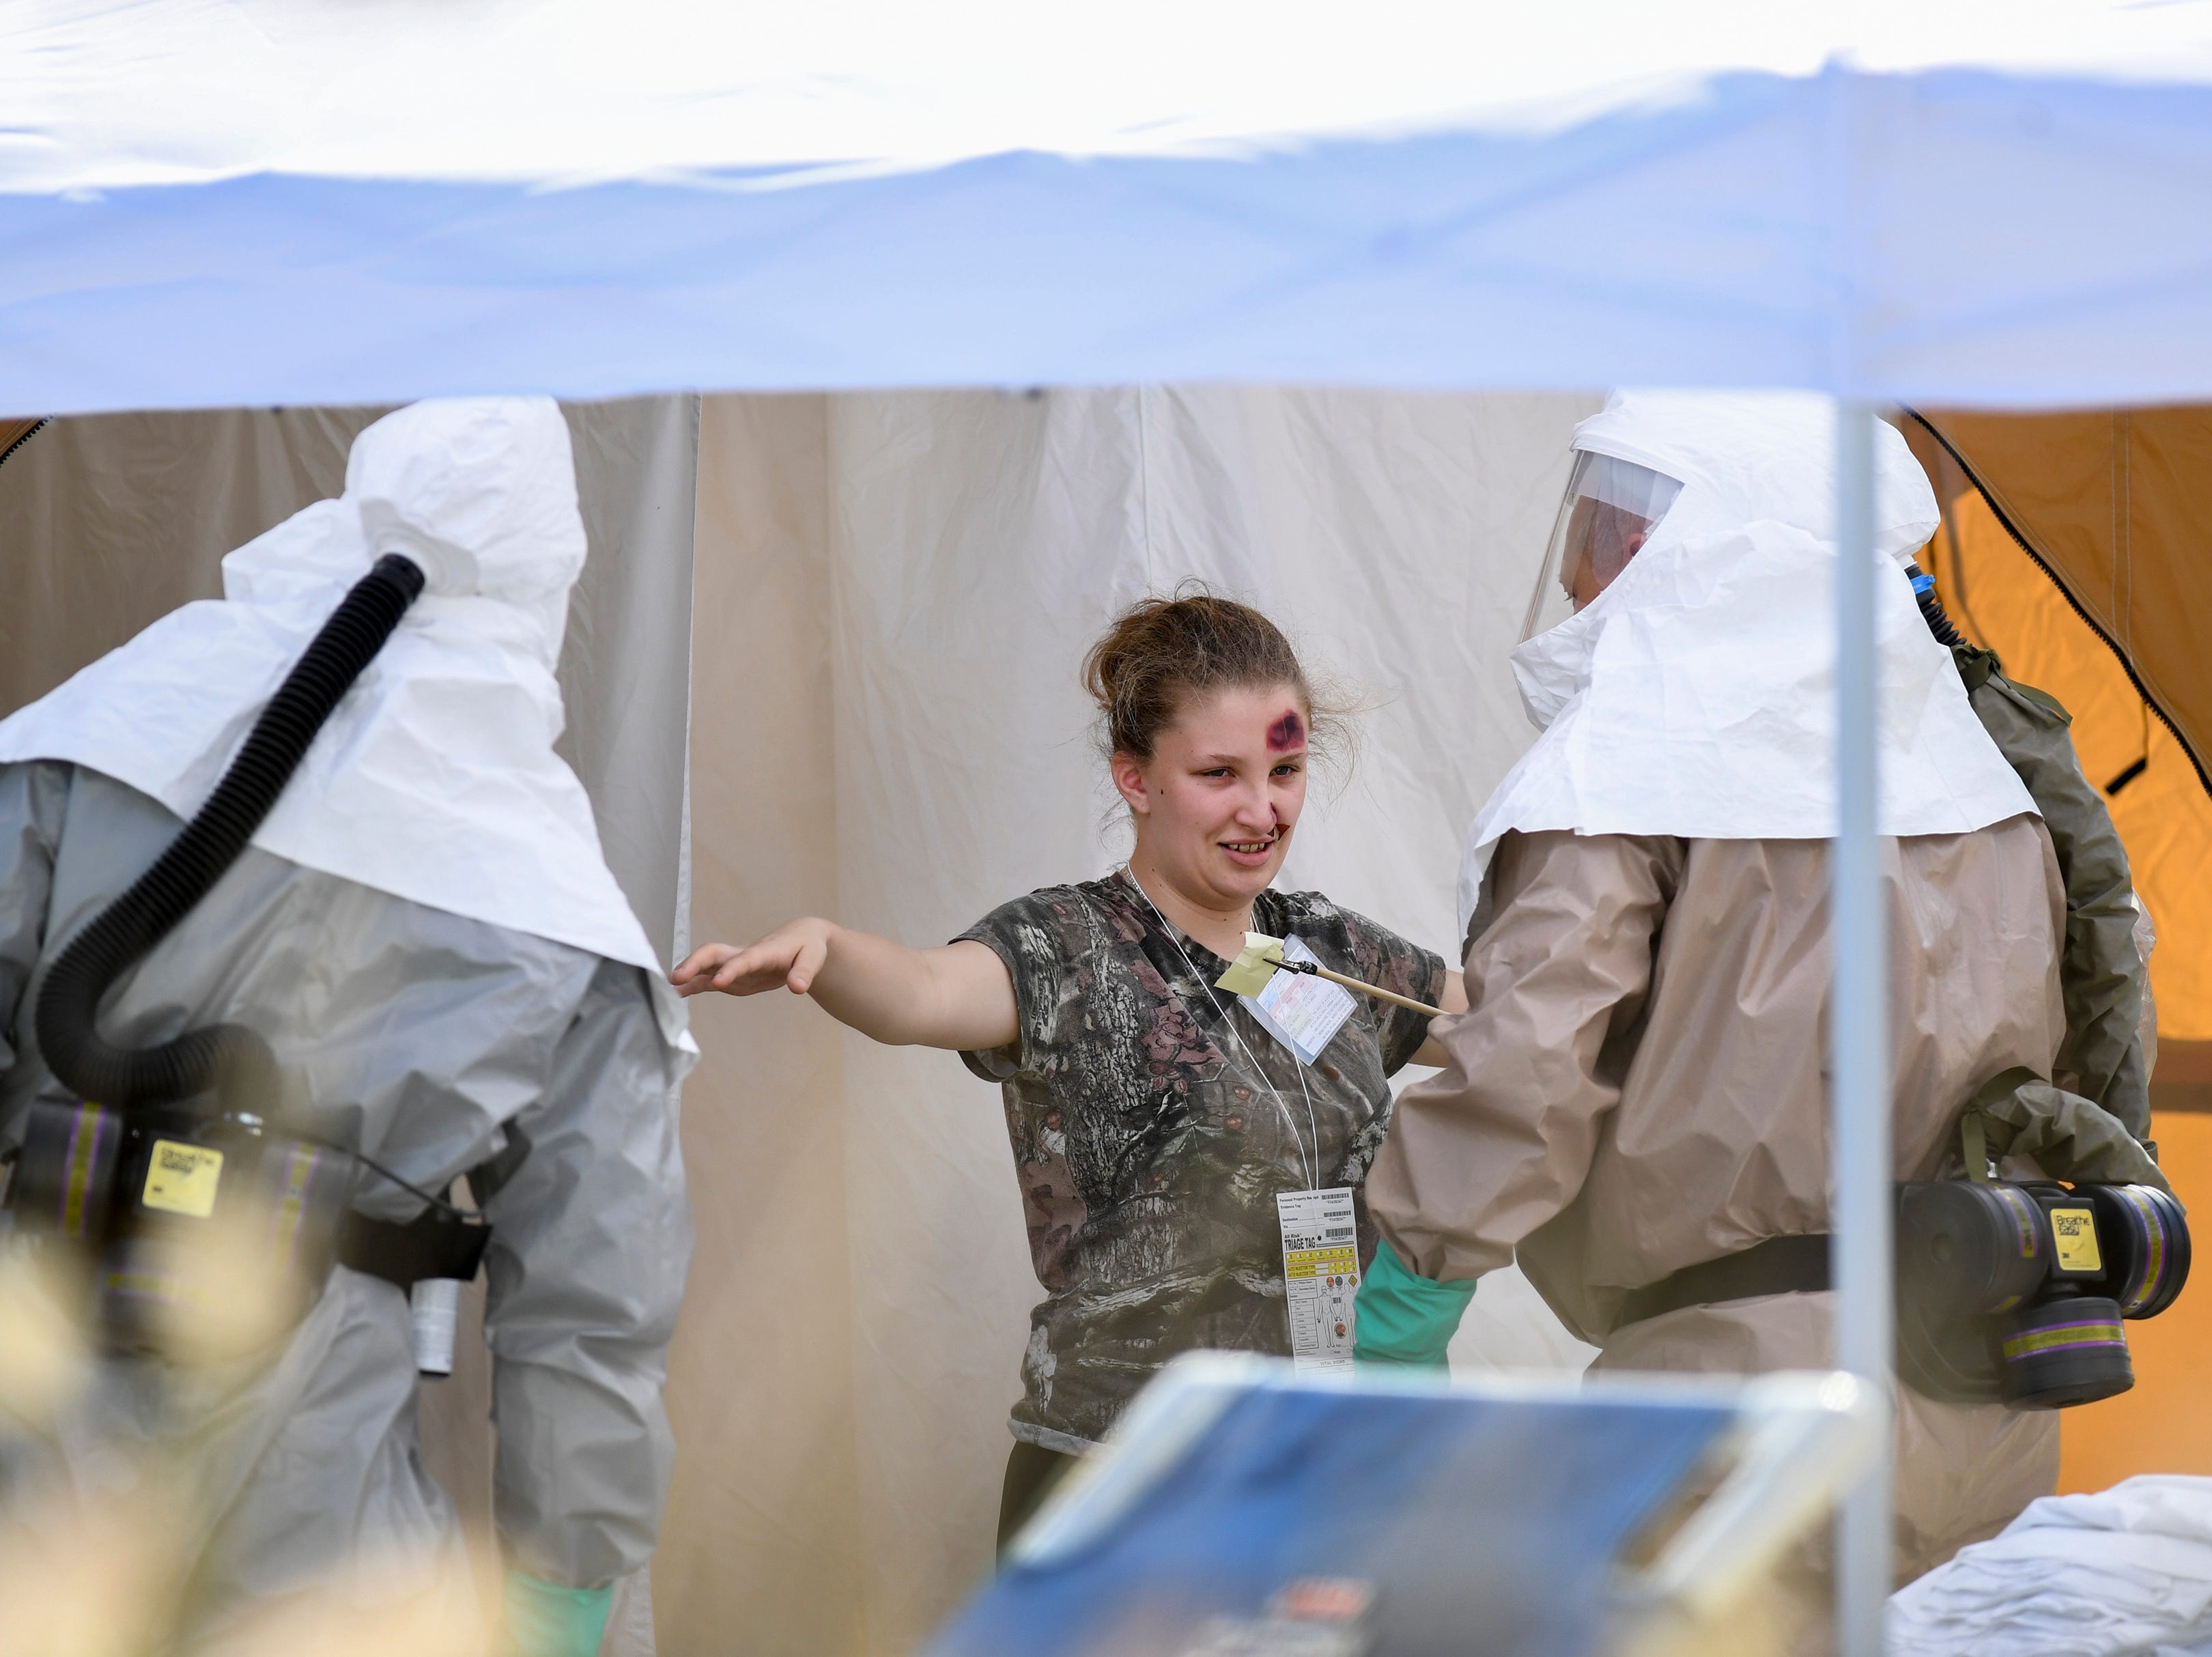 """Sadie Peters, 18, a junior at St. Lucie West Centennial High School, plays the part of a victim going through decontamination and being treated by the Hospital Emergency Response Team, HERT, at the Cleveland Clinic Tradition Hospital on Thursday, April 11, 2019, during full-scale disaster preparedness exercises. """"It helps to save a life,"""" Peters said. More than 150 high school students are participating, playing the roll of victims, during the exercise. Cleveland Clinic Martin Health hospitals, along with the Central Florida Disaster Medical Coalition, are participating in the exercises."""